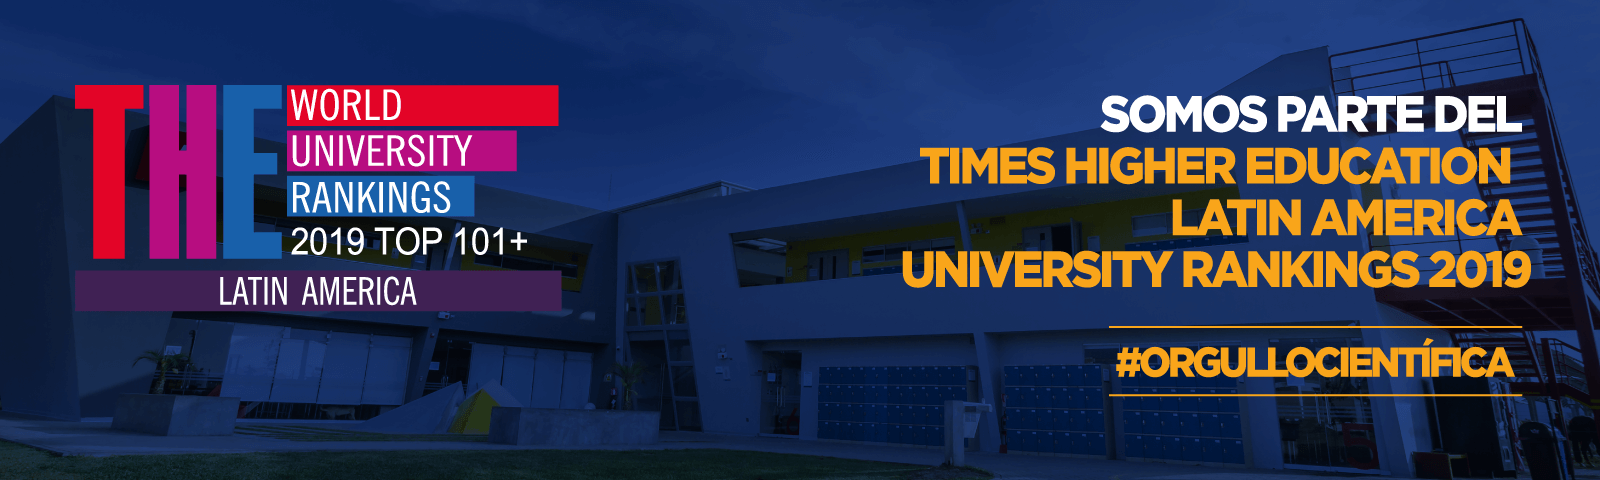 Científica es una de las 5 universidades peruanas clasificadas en el Times Higher Education Latin America University Rankings 2019